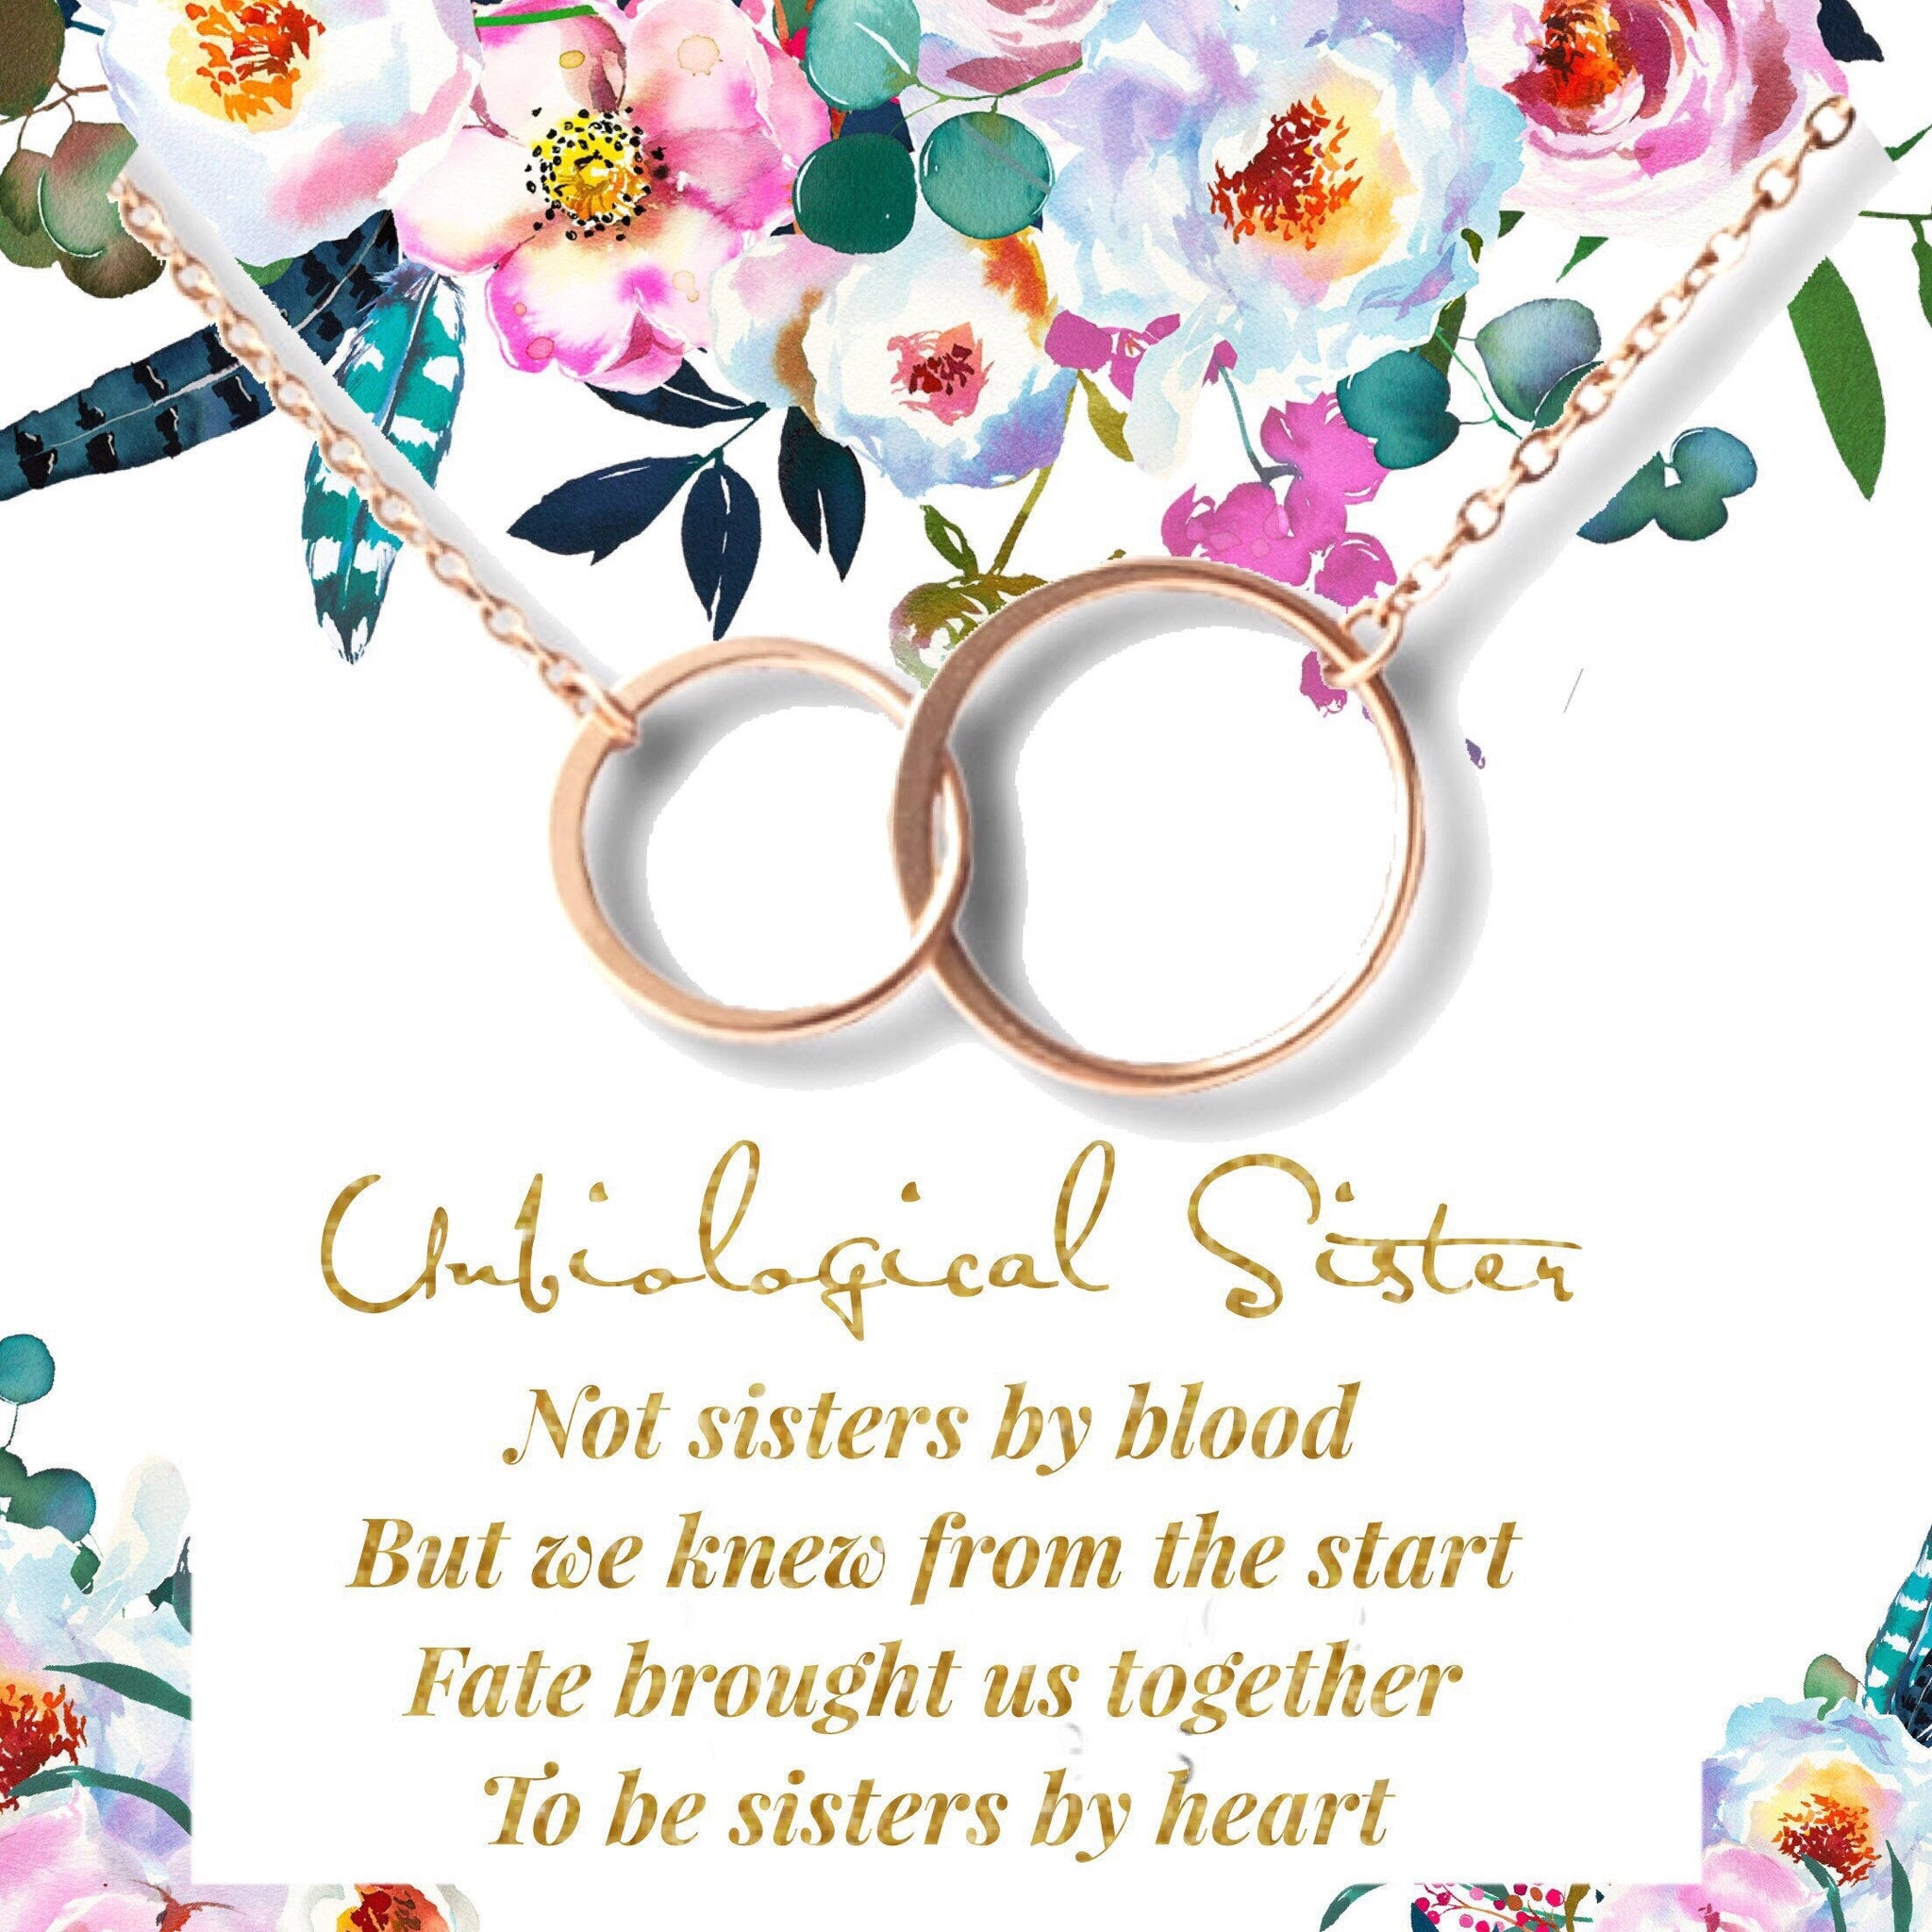 Best Friend Jewelry for Unbiological Soul Sister BFF Not Sister by Blood But Sister by Heart Gift Friendship Bracelets for Women Girls